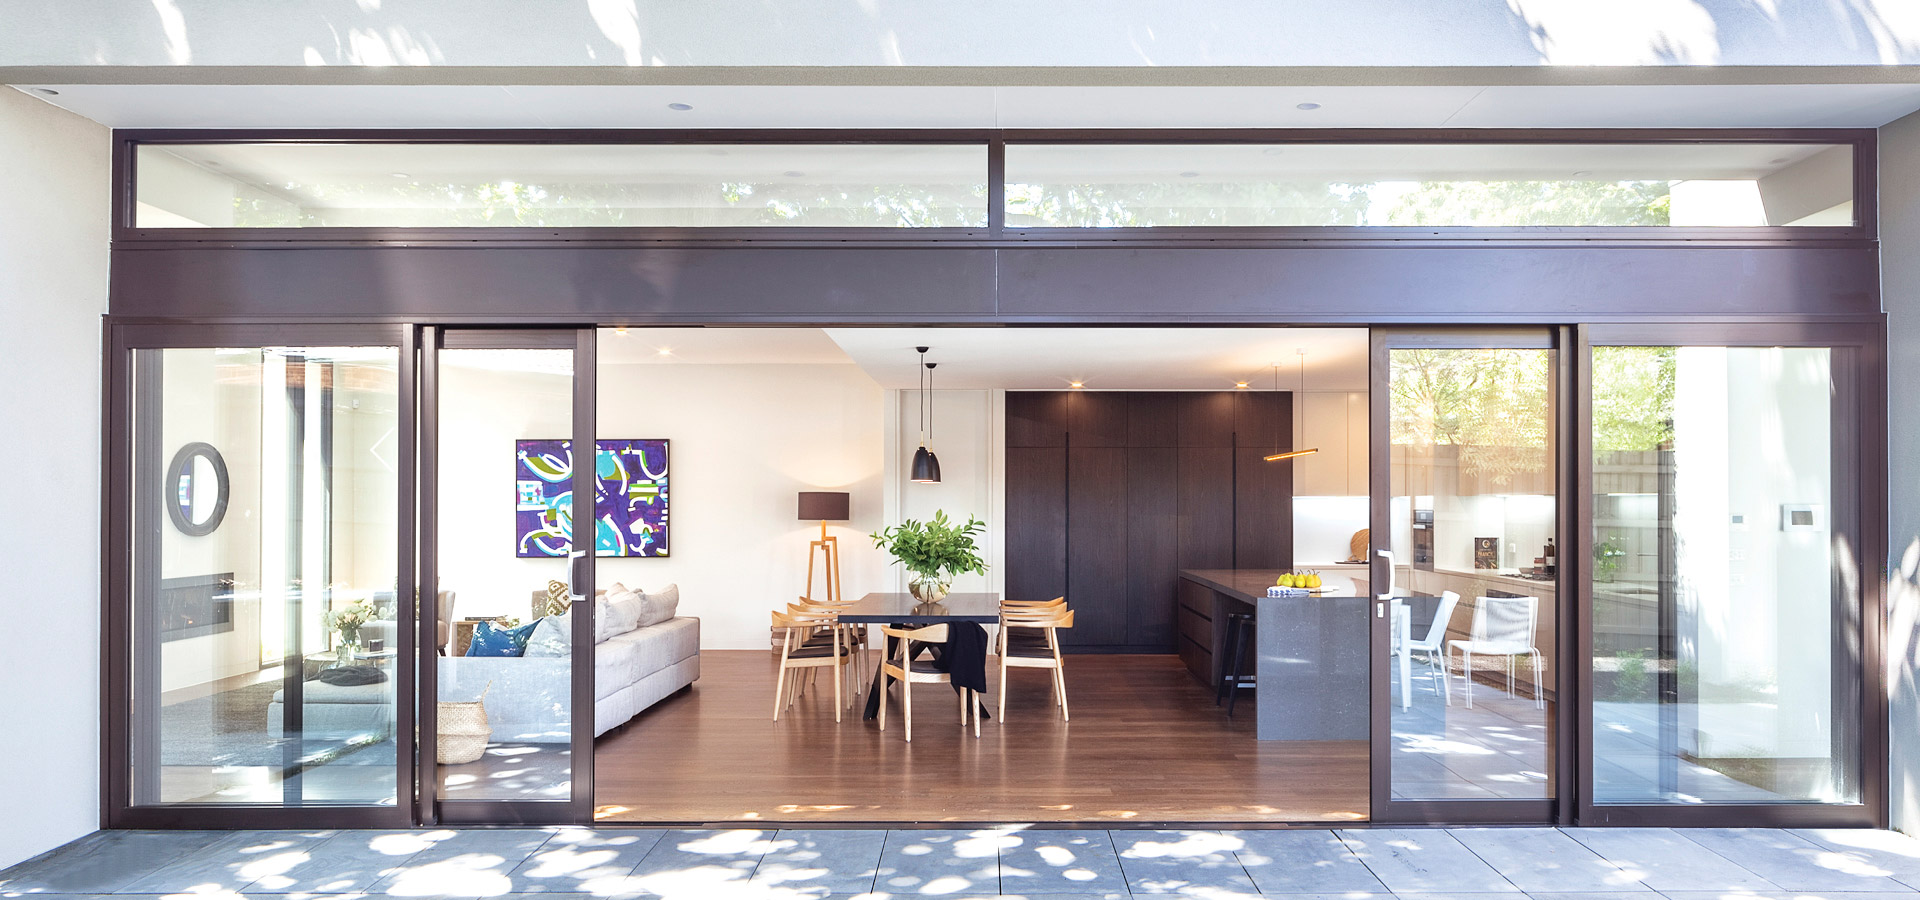 abode_home_images_3